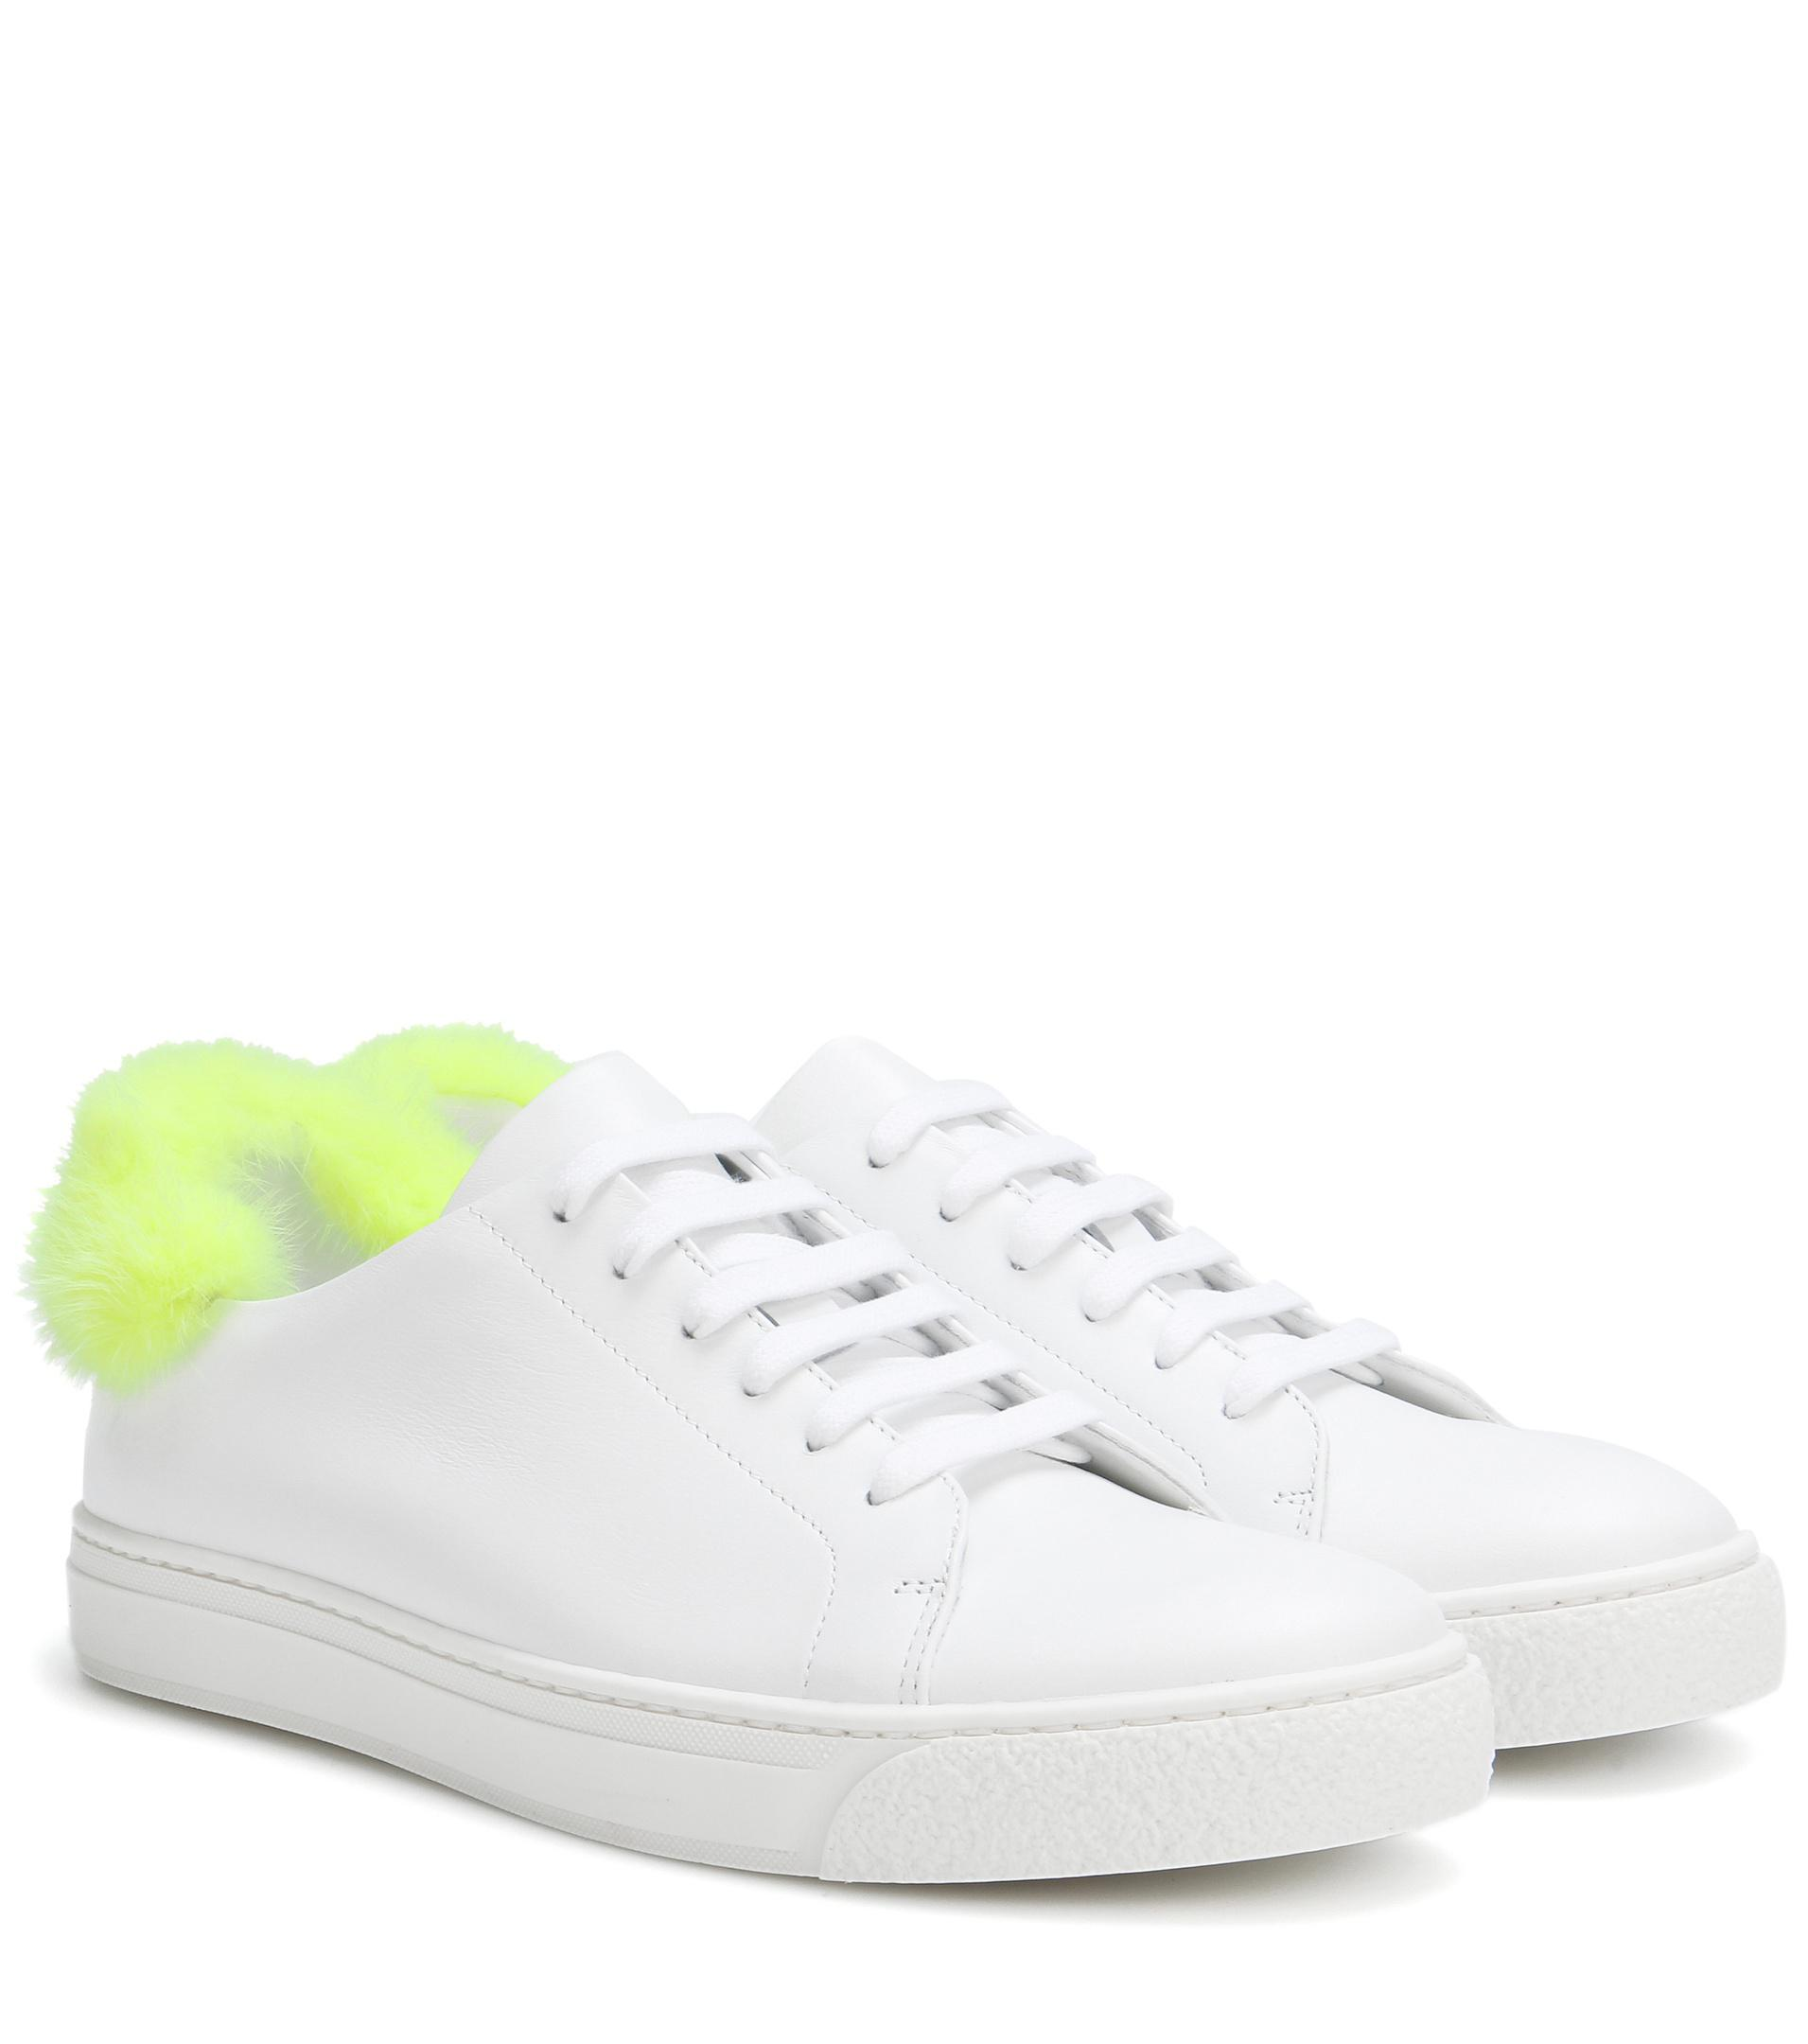 Lyst - Anya Hindmarch Fur-trimmed Leather Sneakers in White - Save 30% 6d68ec659f0